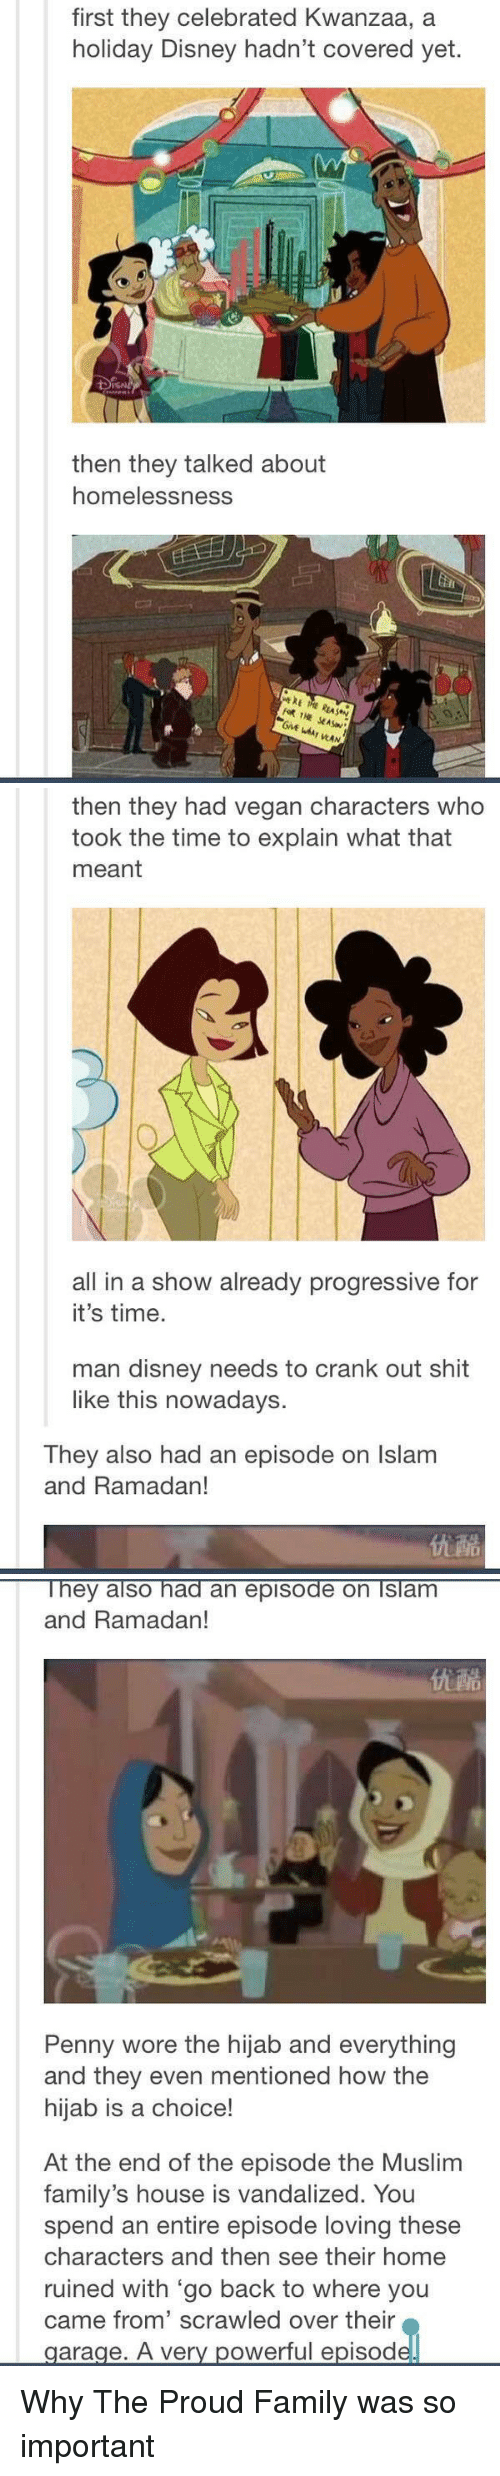 Disney, Homeless, and The Proud Family: first they celebrated Kwanzaa, a  holiday Disney hadn't covered yet.  then they talked about  homelessness.  THE  WAN   then they had vegan characters who  took the time to explain what that  meant  all in a show already progressive for  it's time.  man disney needs to crank out shit  like this nowadays.  They also had an episode on lslam  and Ramadan!   They also had an episode on Islam  and Ramadan!  Penny wore the hijab and everything  and they even mentioned how the  hijab is a choice!  At the end of the episode the Muslim  family's house is vandalized. You  spend an entire episode loving these  characters and then see their home  ruined with go back to where you  came from' scrawled over their  garage. A very powerful episod Why The Proud Family was so important